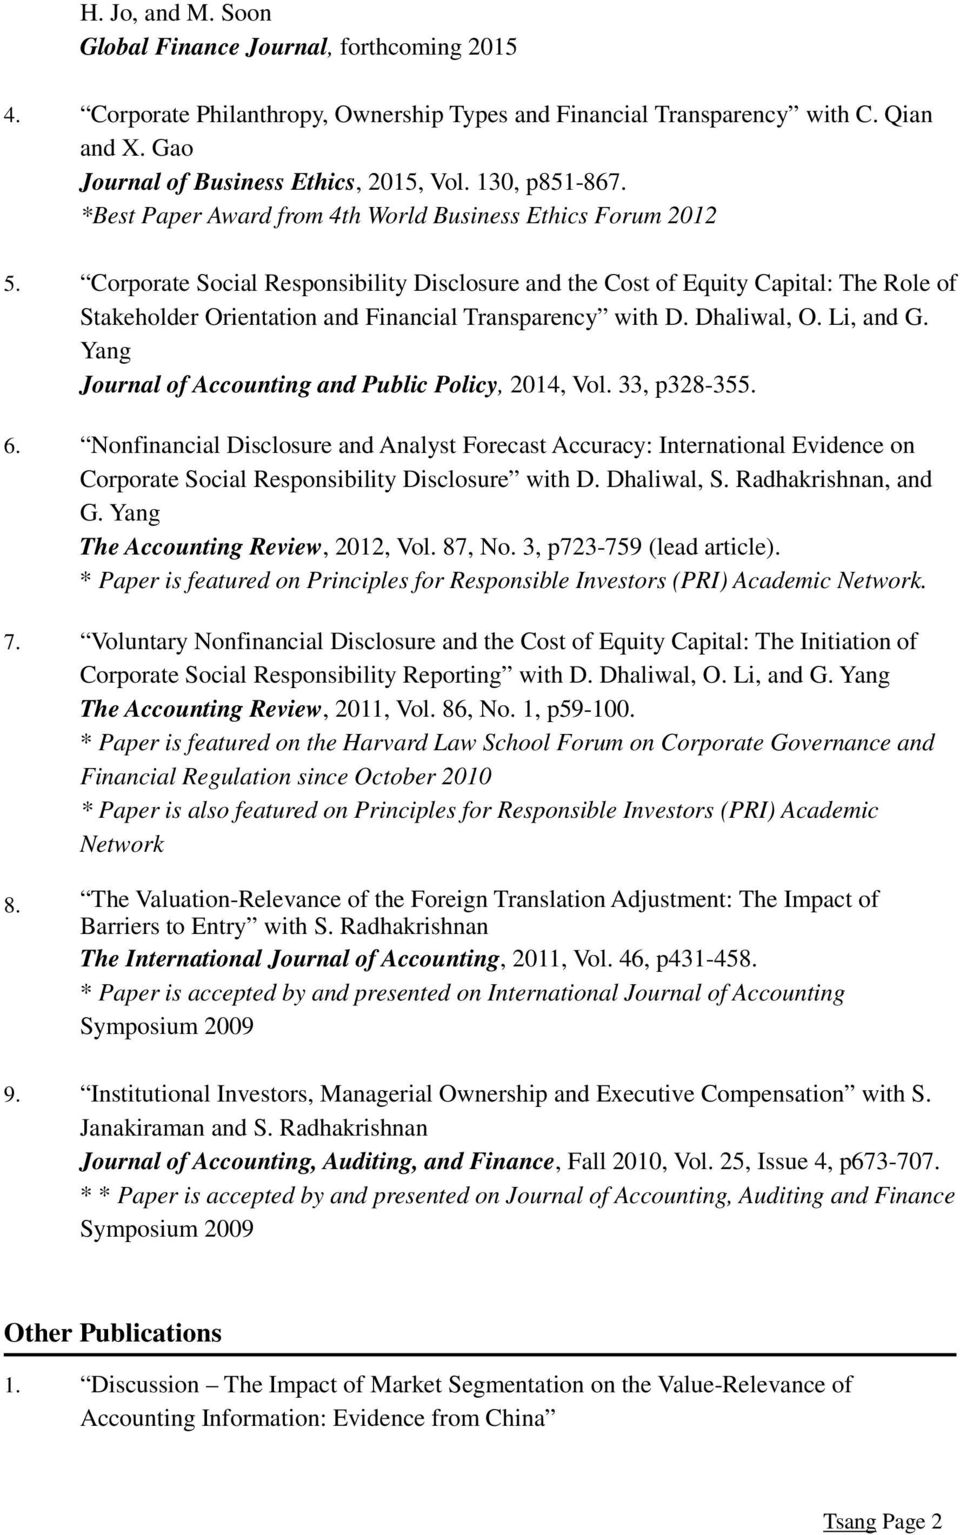 Corporate Social Responsibility Disclosure and the Cost of Equity Capital: The Role of Stakeholder Orientation and Financial Transparency with D. Dhaliwal, O. Li, and G.